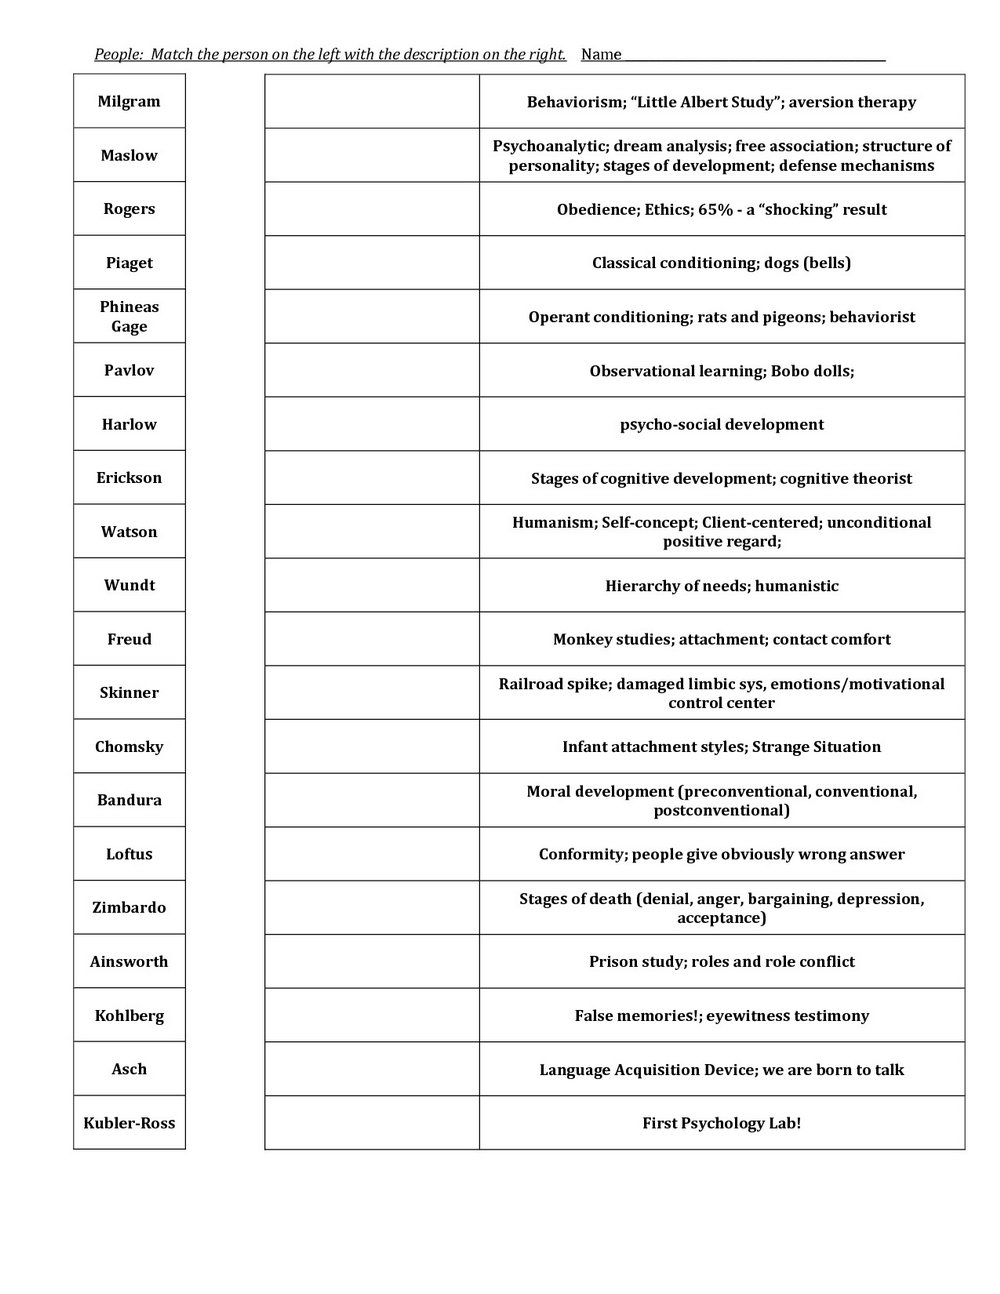 Honesty In Addiction Recovery Worksheets | Universal Network